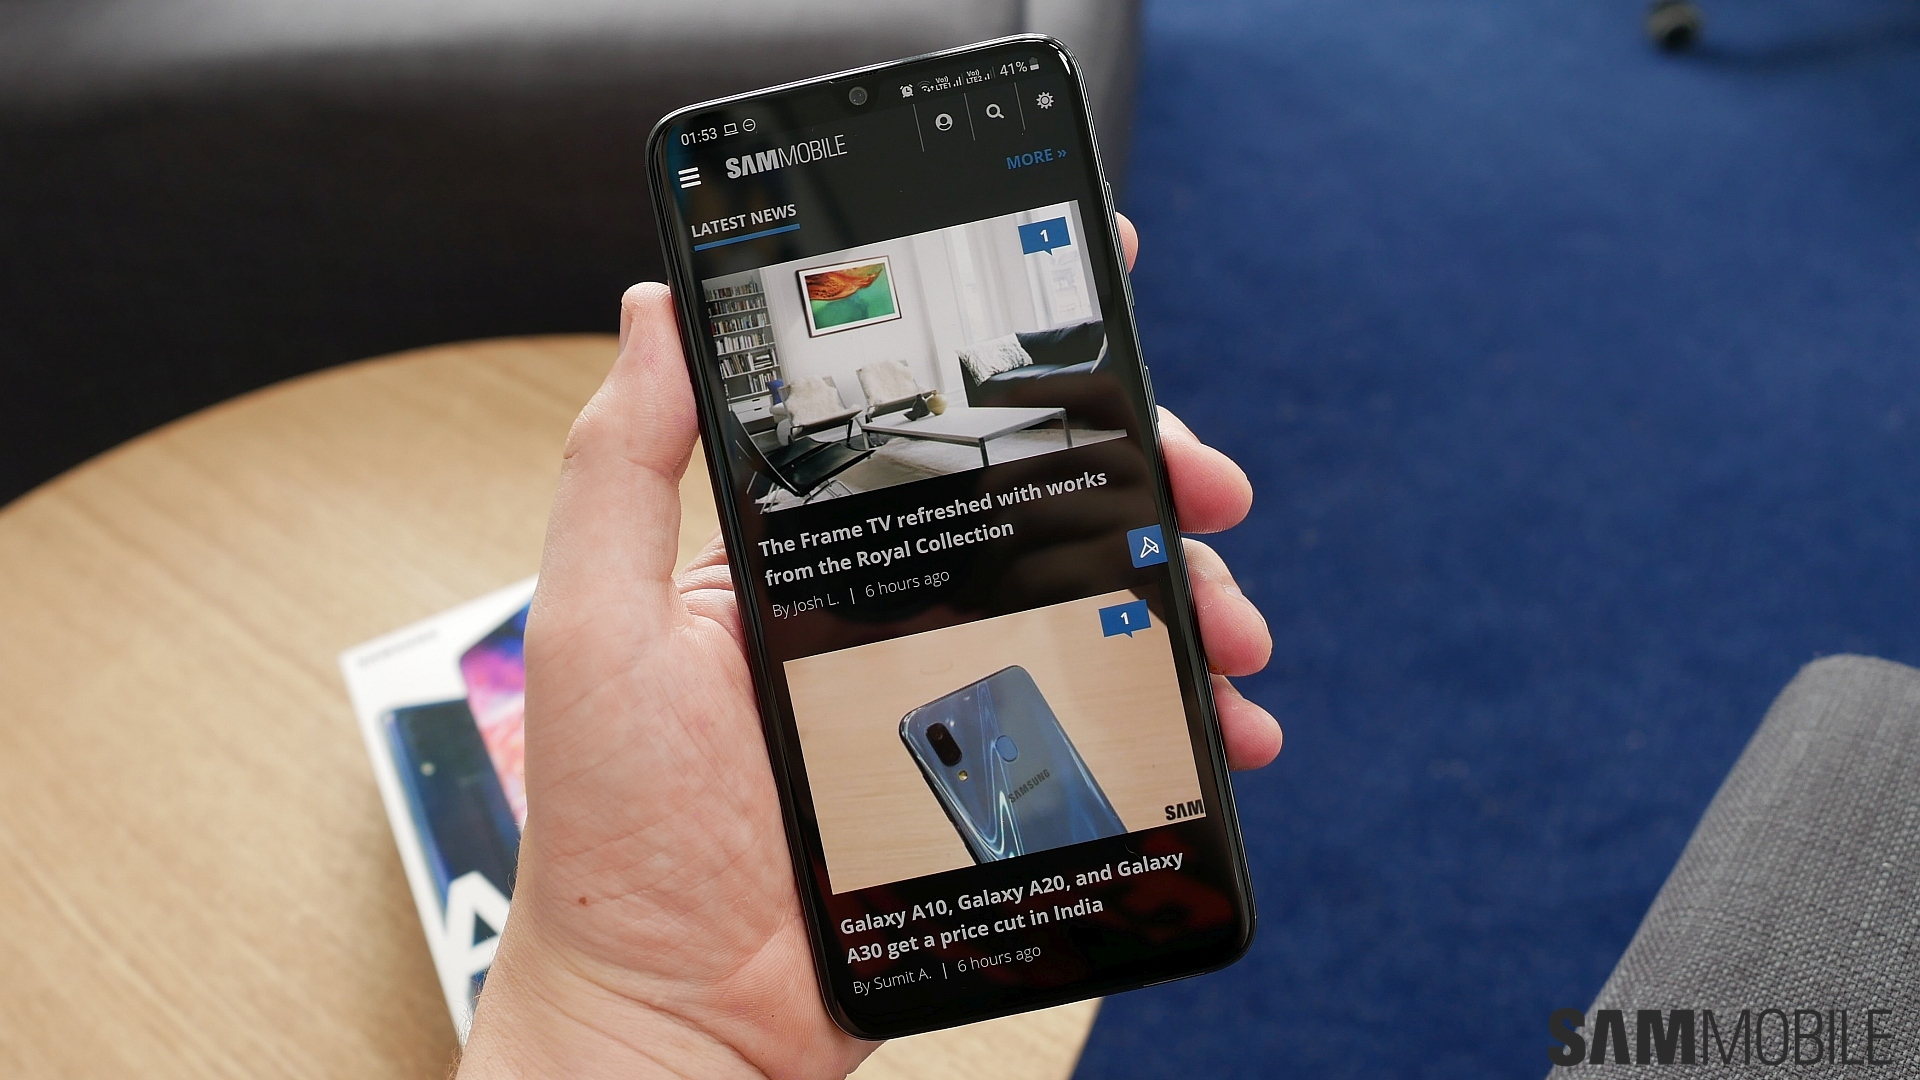 Samsung Galaxy A70 review: A media consumption powerhouse - SamMobile